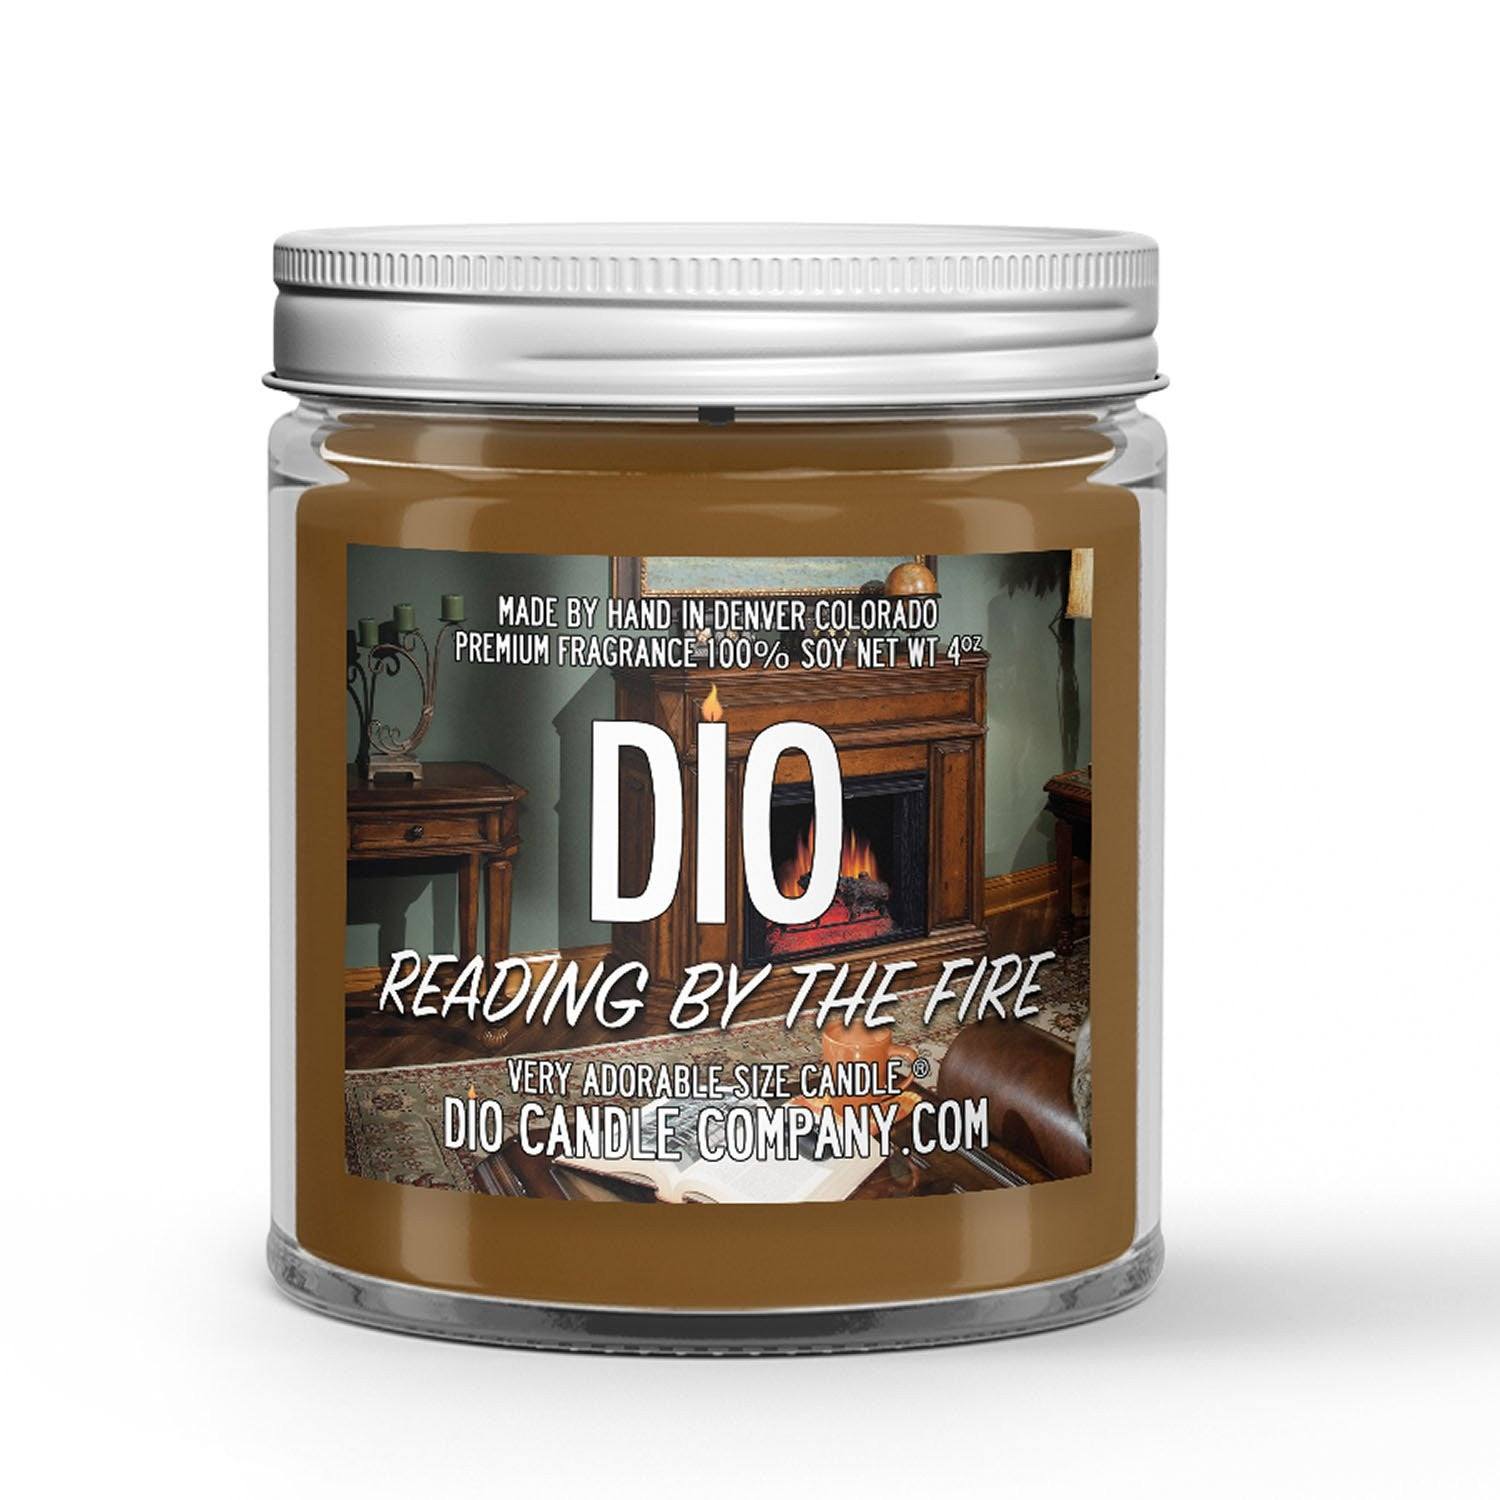 Reading by the Fire Candle - Crackling Fire - Vanilla - Books - 4oz Very Adorable Size Candle® - Dio Candle Company